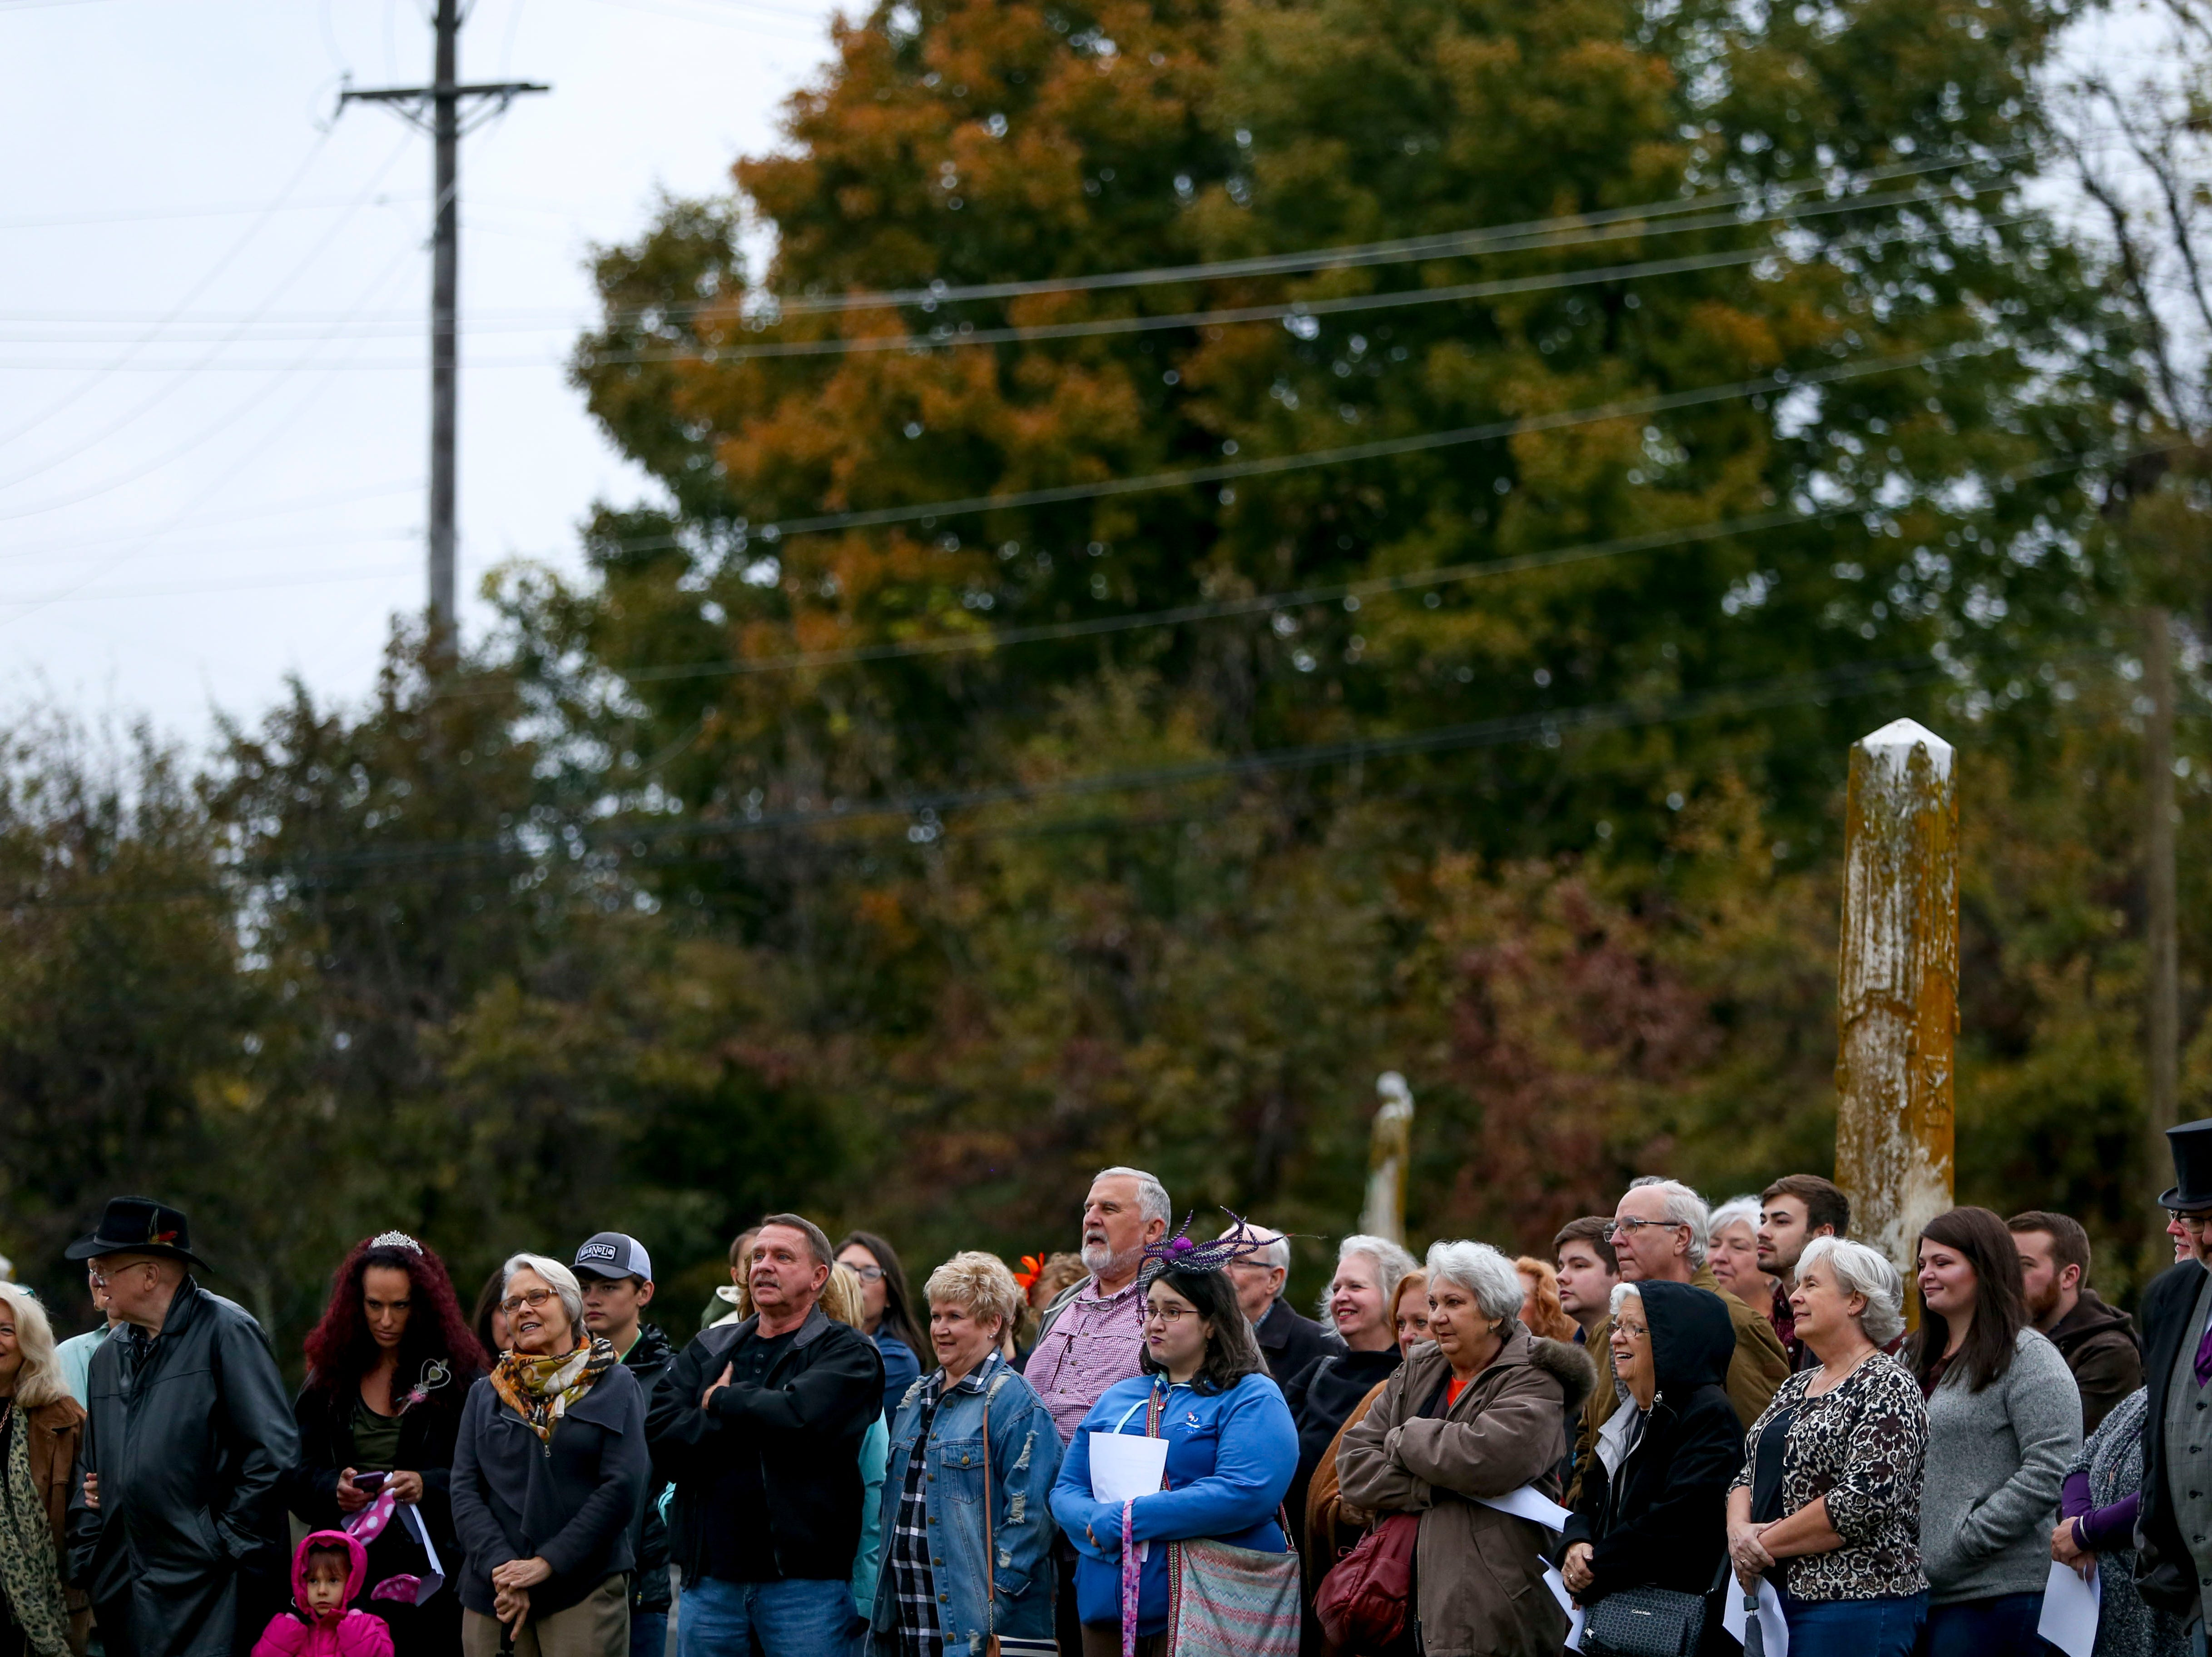 Visitors line up and listen to monologues from historic figures at a mausoleum during Ghost Walk tour at Riverside Cemetery in Jackson, Tenn., on Friday, Oct. 26, 2018.